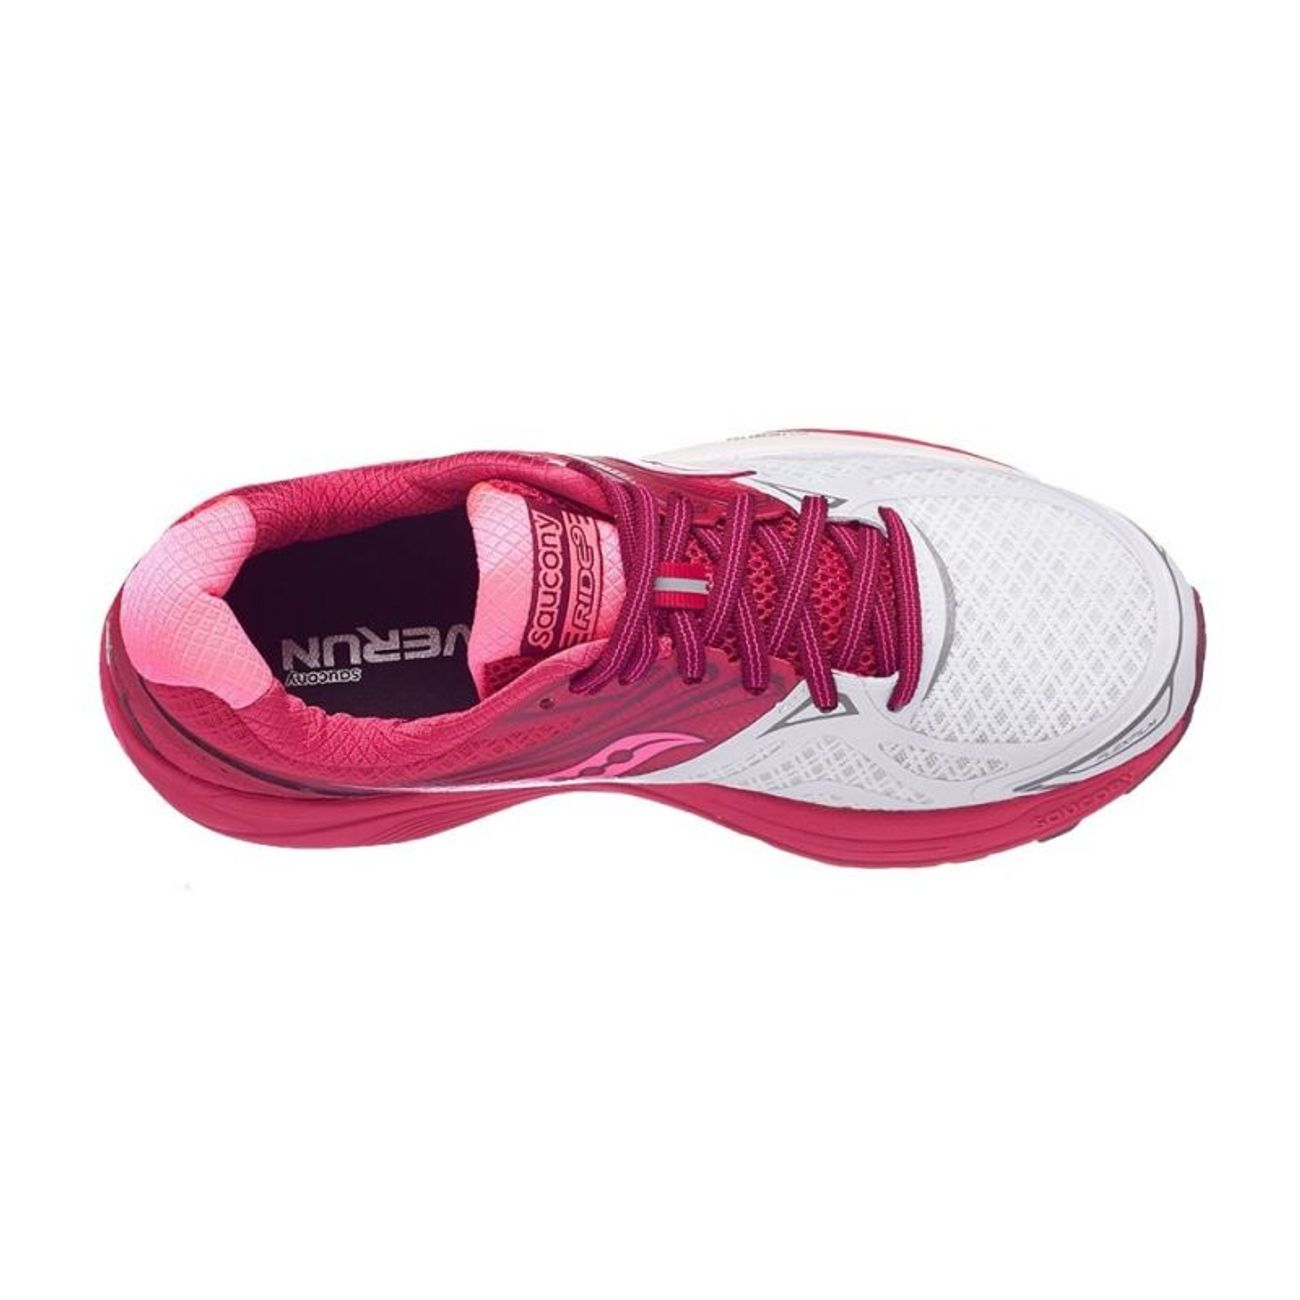 Blanc Ride Saucony S103186 9 Rose Running Adulte l1TFcuKJ3